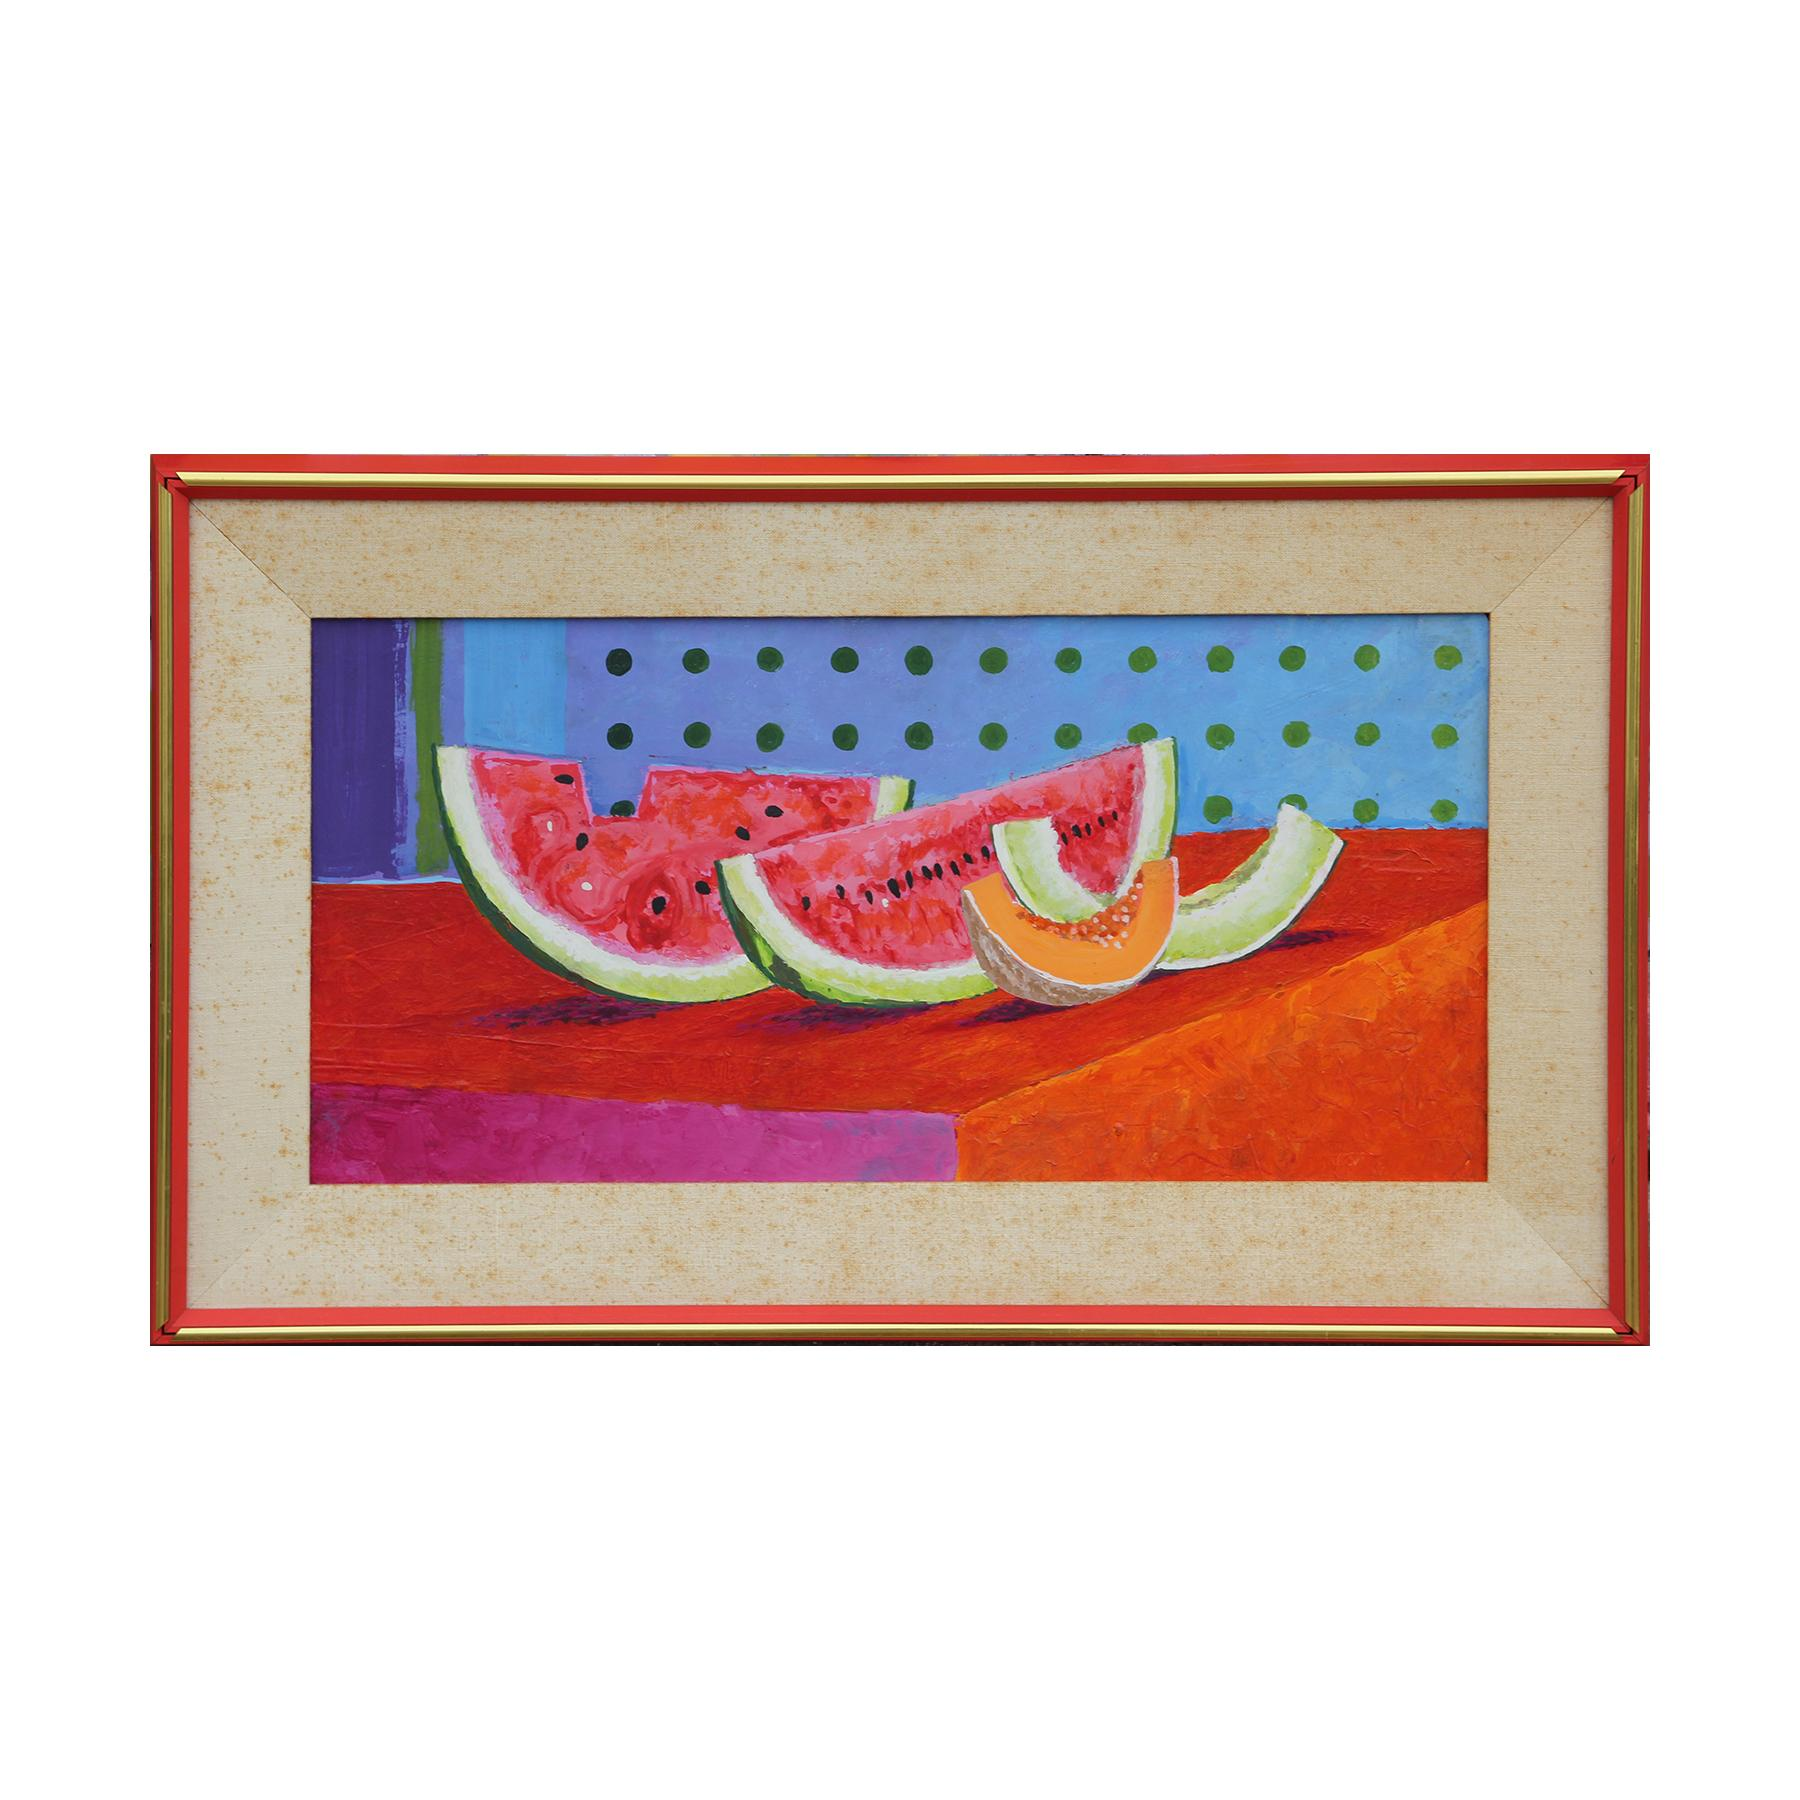 Naturalistic Red and Blue Watermelon Still Life Painting